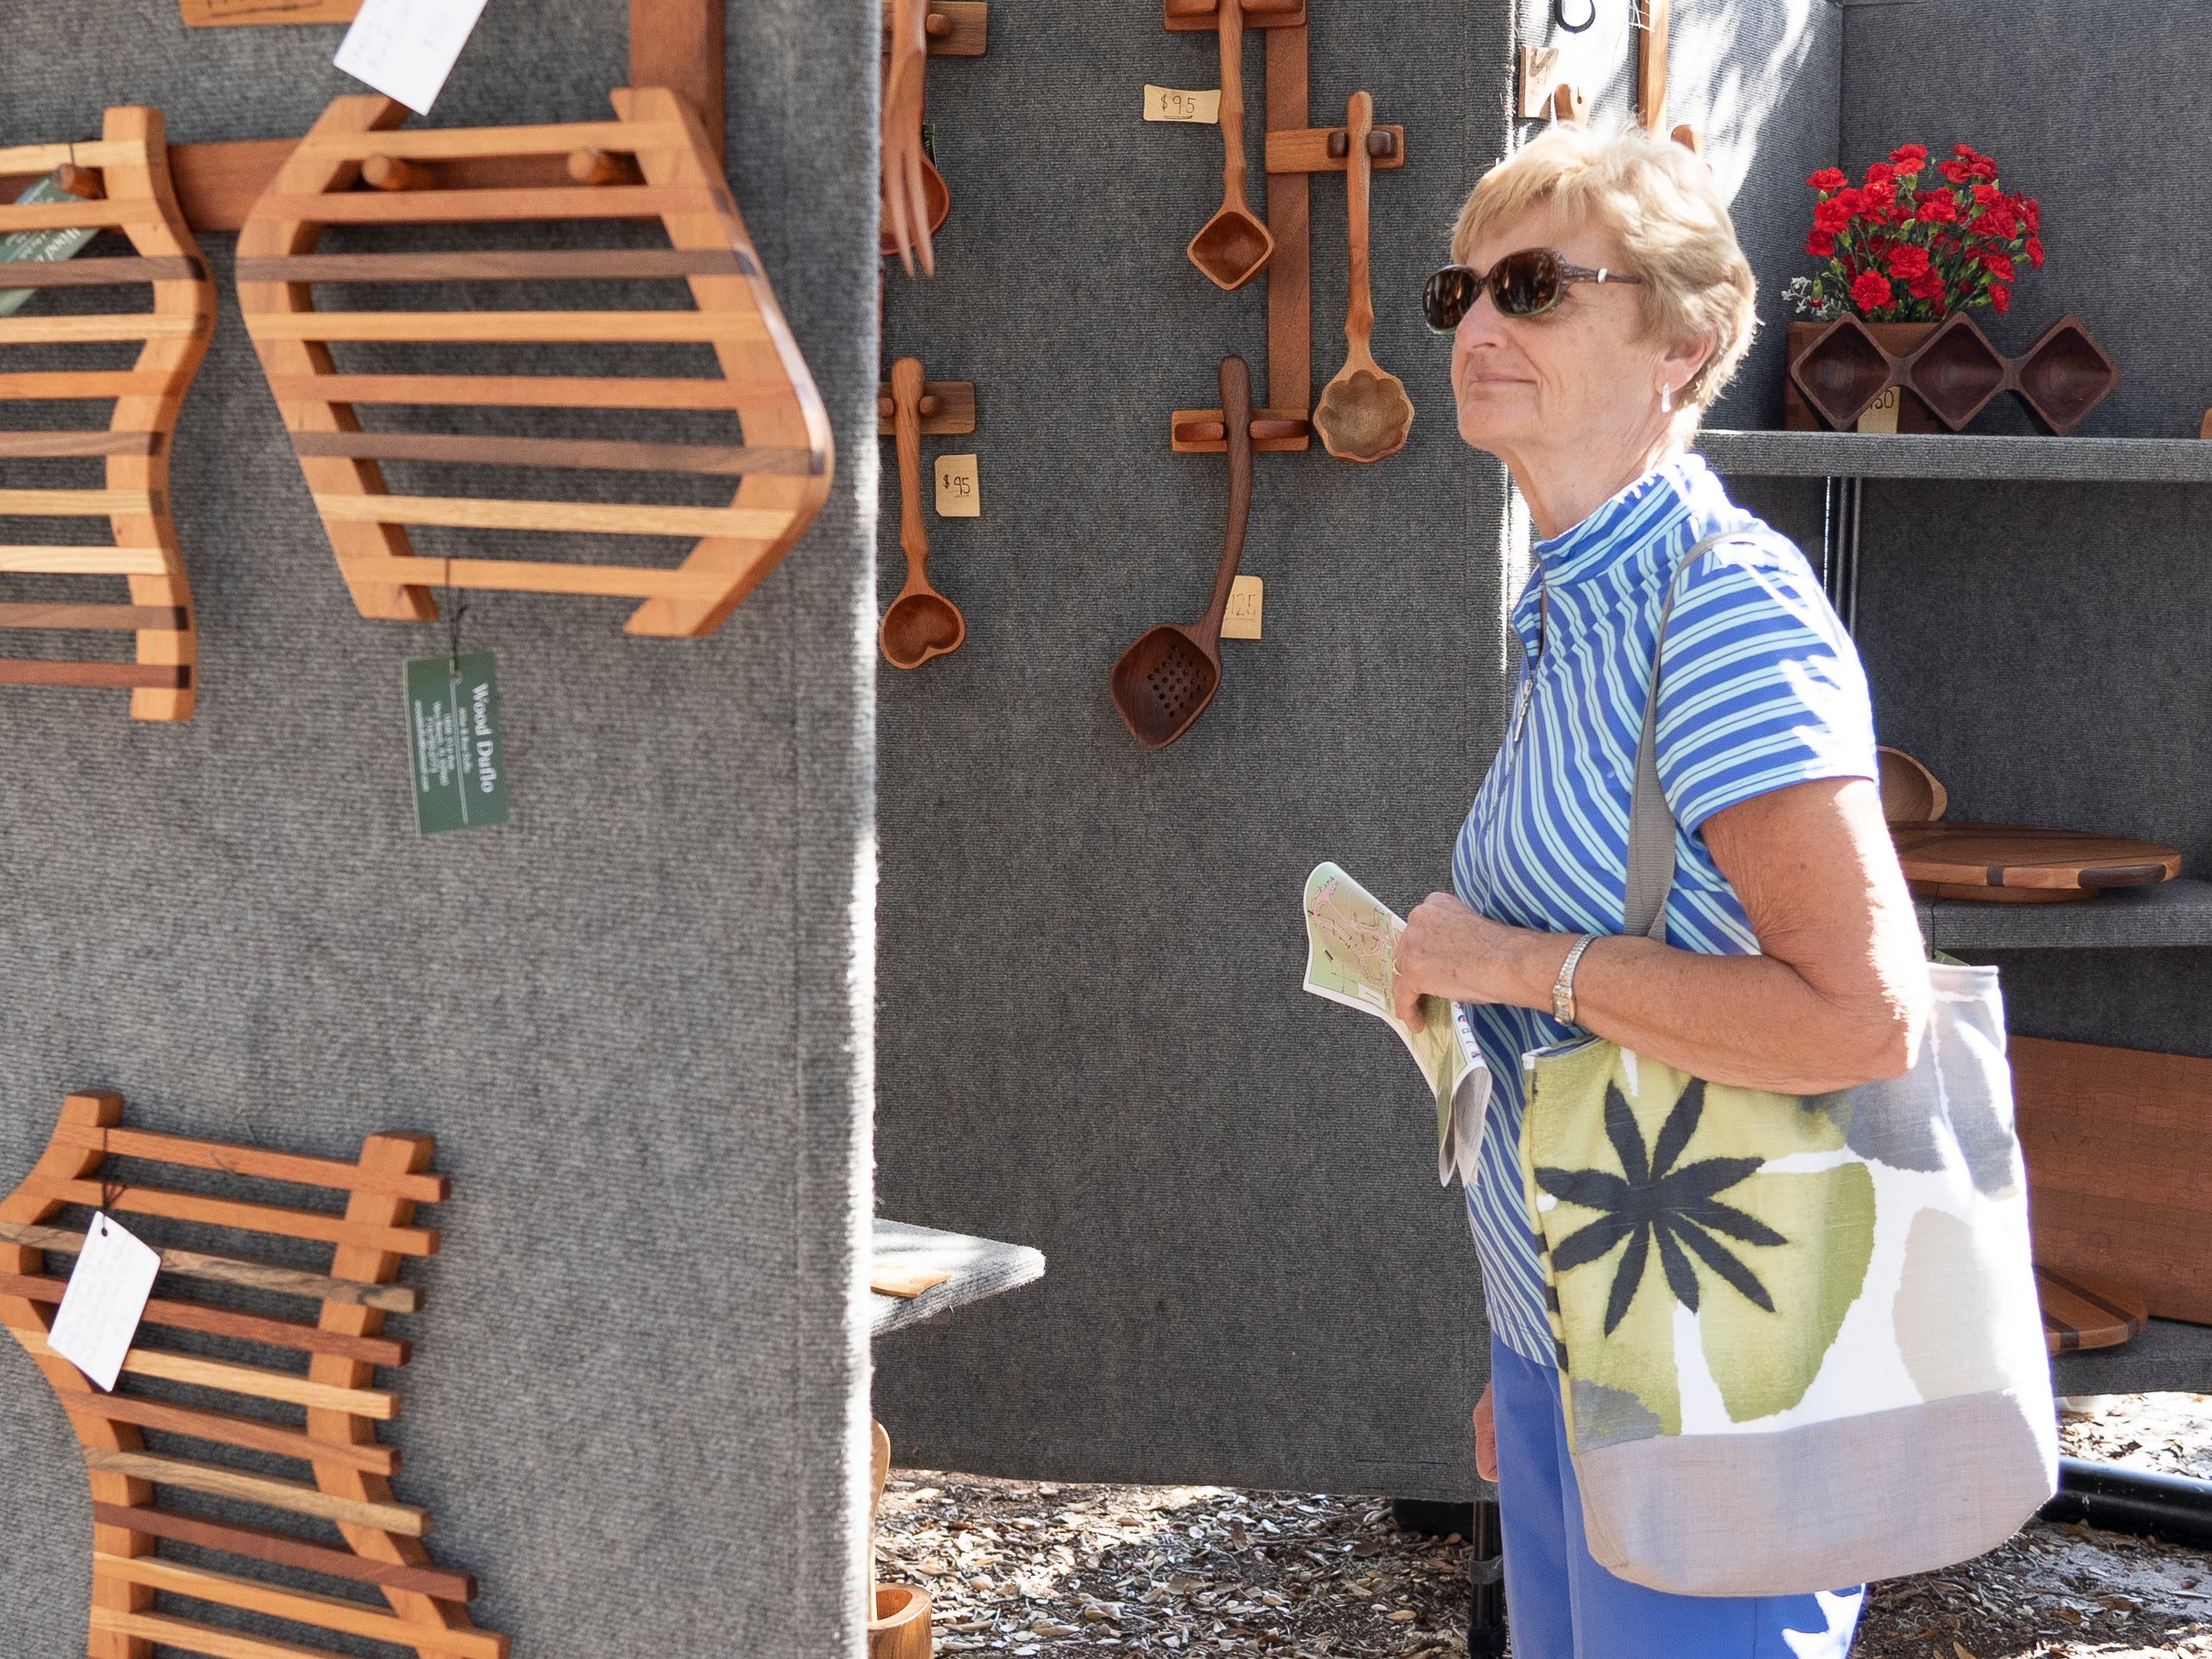 The 68th annual Under the Oaks Fine Arts & Crafts Show was held March 8-10, 2019, in Riverside Park in Vero Beach. The event is the largest fundraiser of the Vero Beach Art Club. More than 220 artists from around the nation and beyond exhibited at the juried show. Sunday hours are from 10 a.m. to 4 p.m.